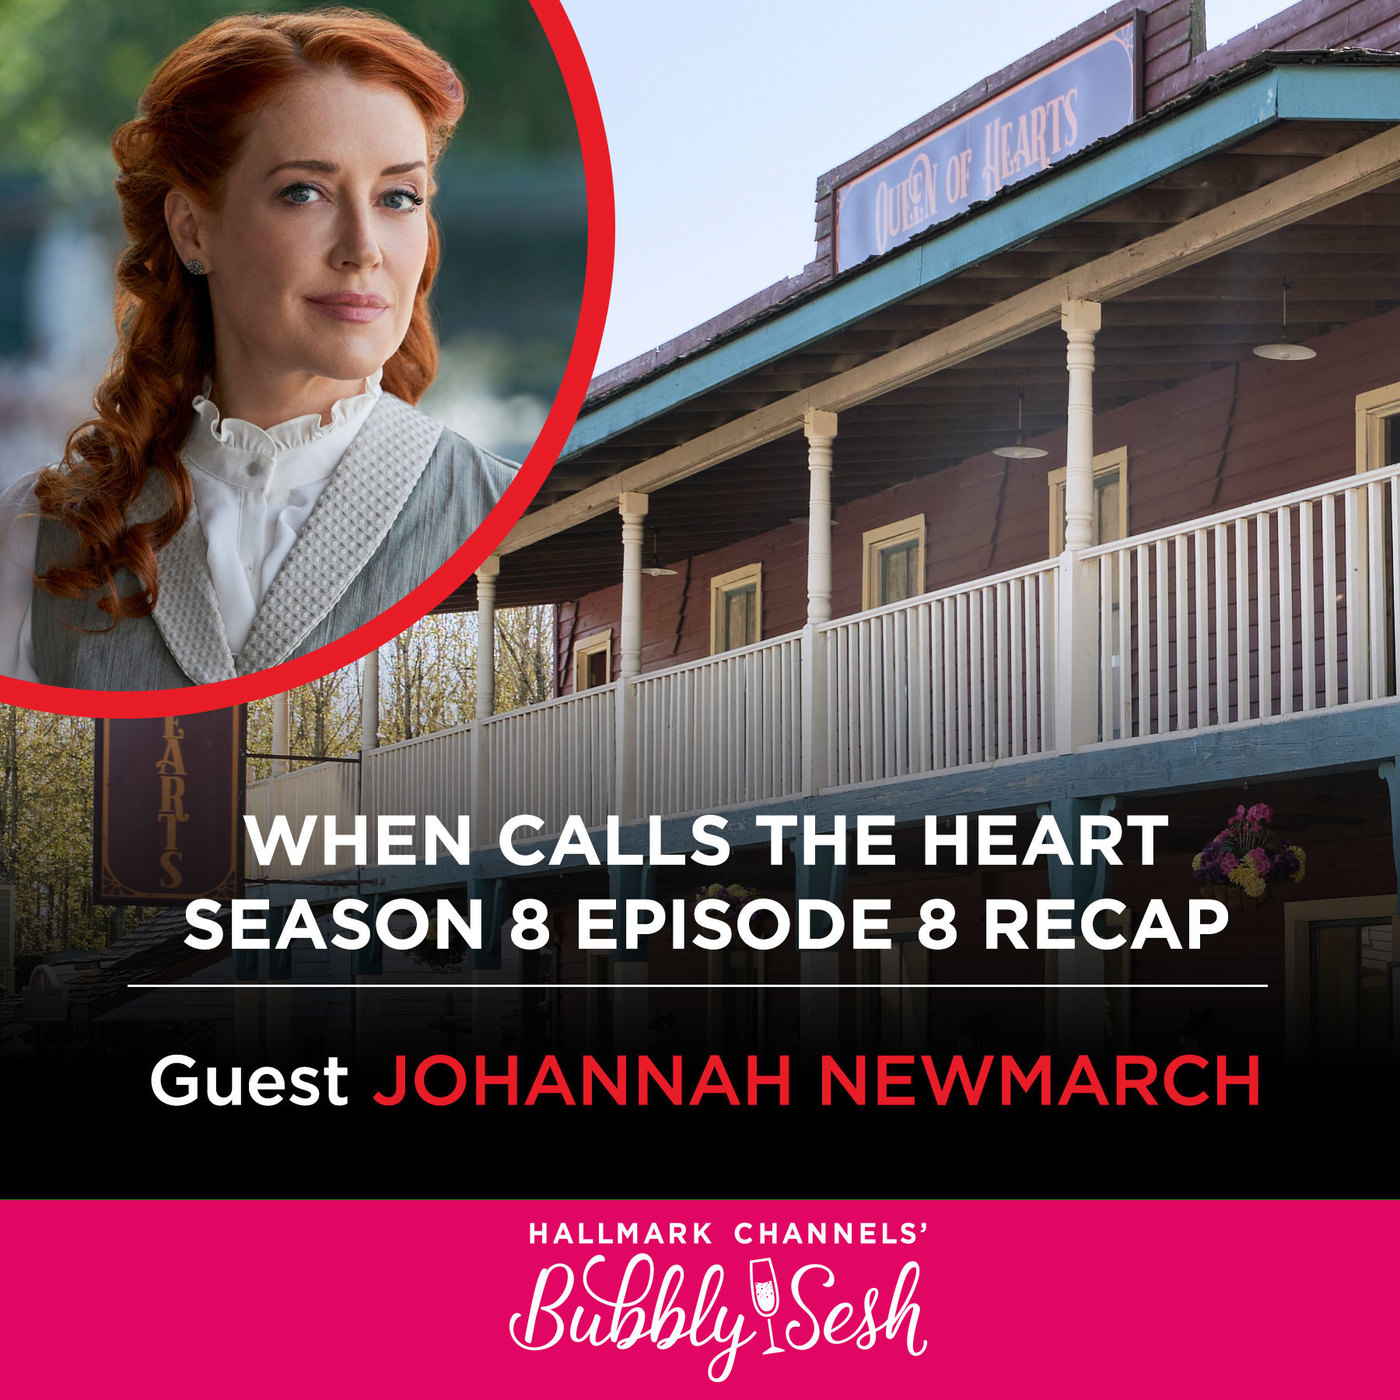 When Calls the Heart S8 Ep 8 Recap with Guest Johannah Newmarch